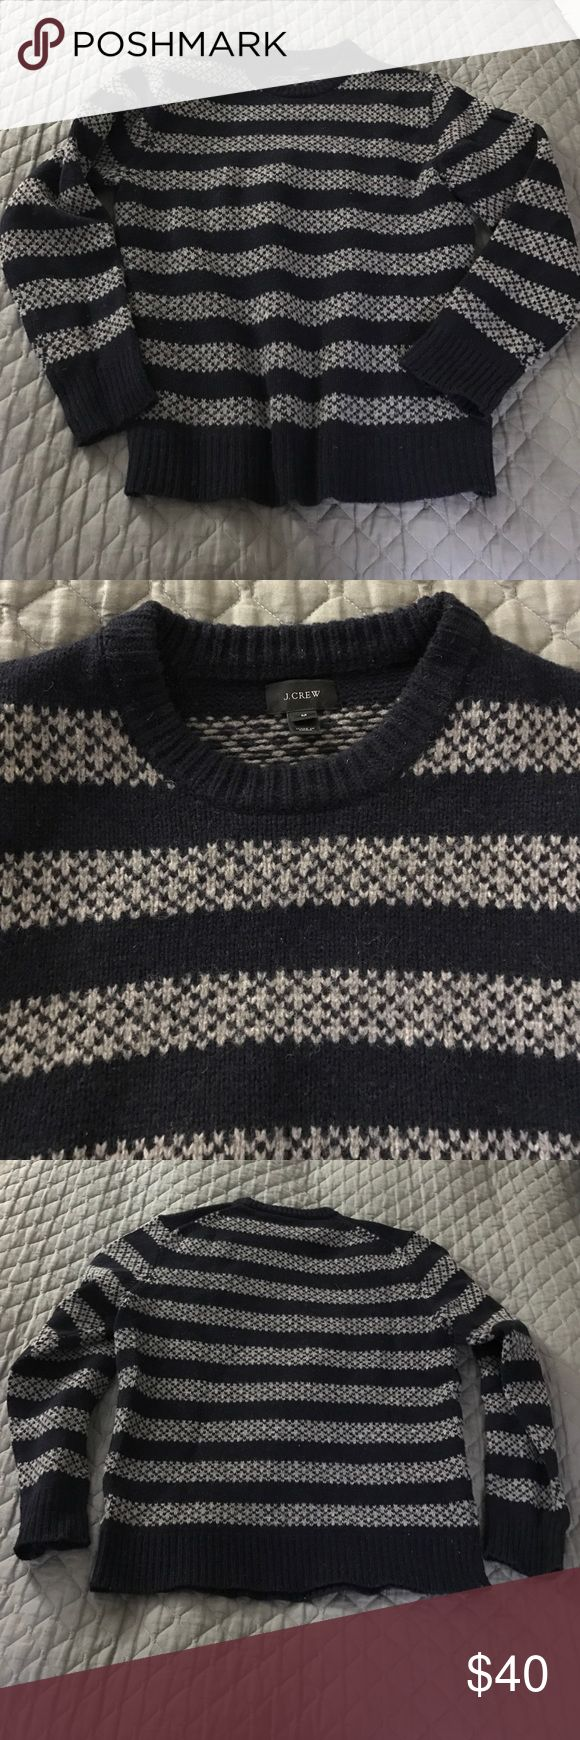 J.Crew Men's Wool Sweater Really warm and awesome J.Crew sweater made of 100% lambs wool. Only worn a handful of times, in great shape with no piling! J. Crew Sweaters Crewneck